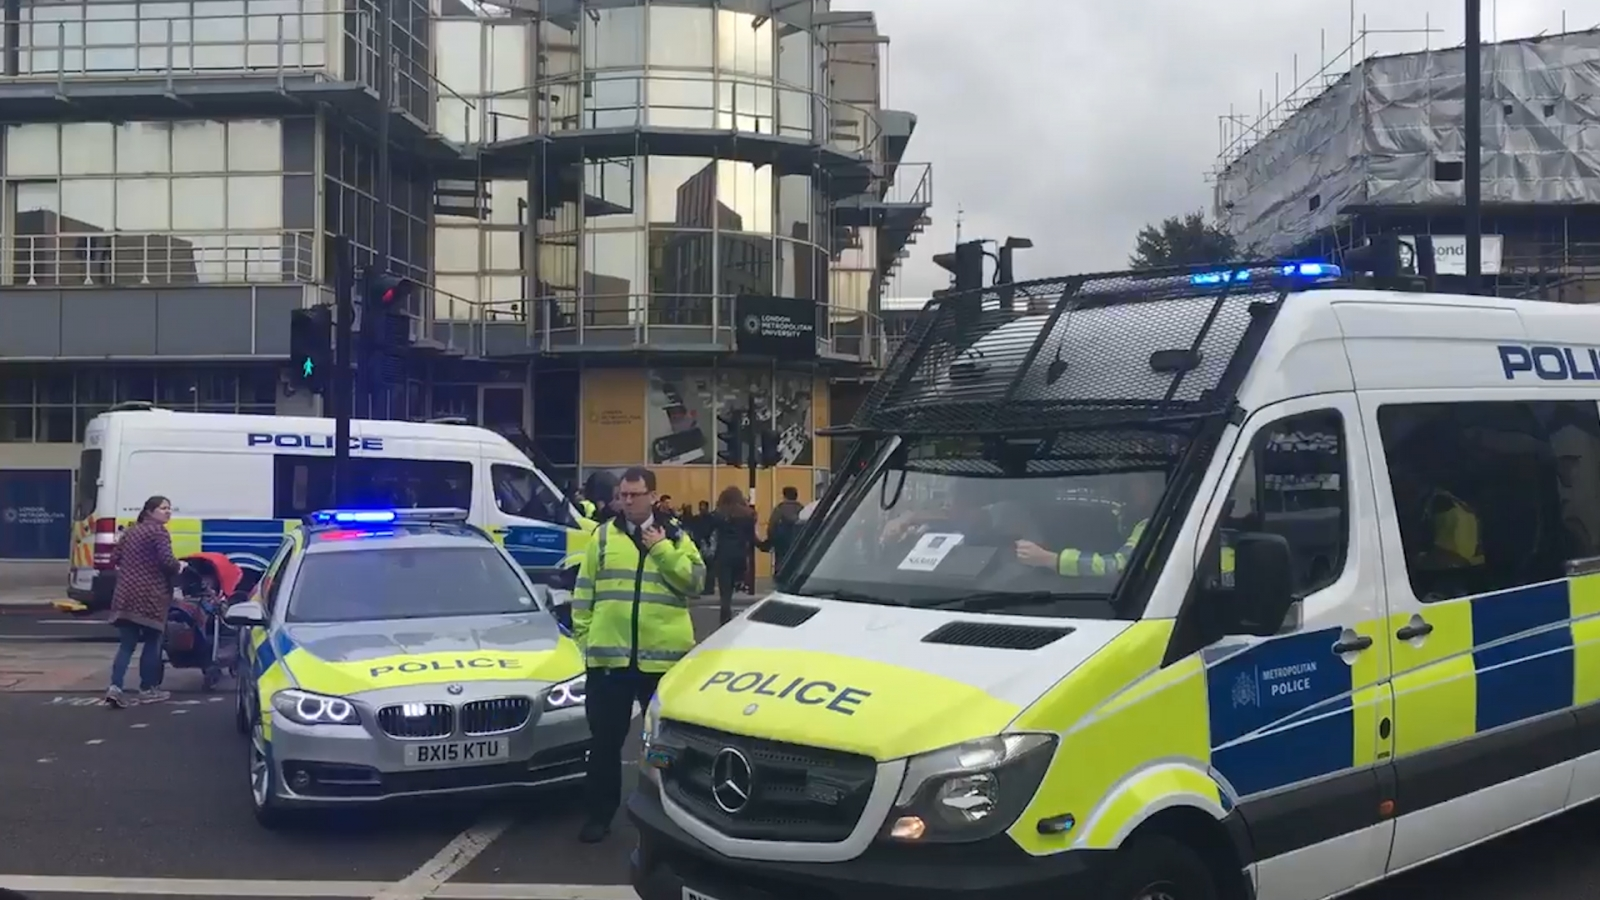 London terror arrest: Armed police taser Tube bomb suspect outside Holloway Road station